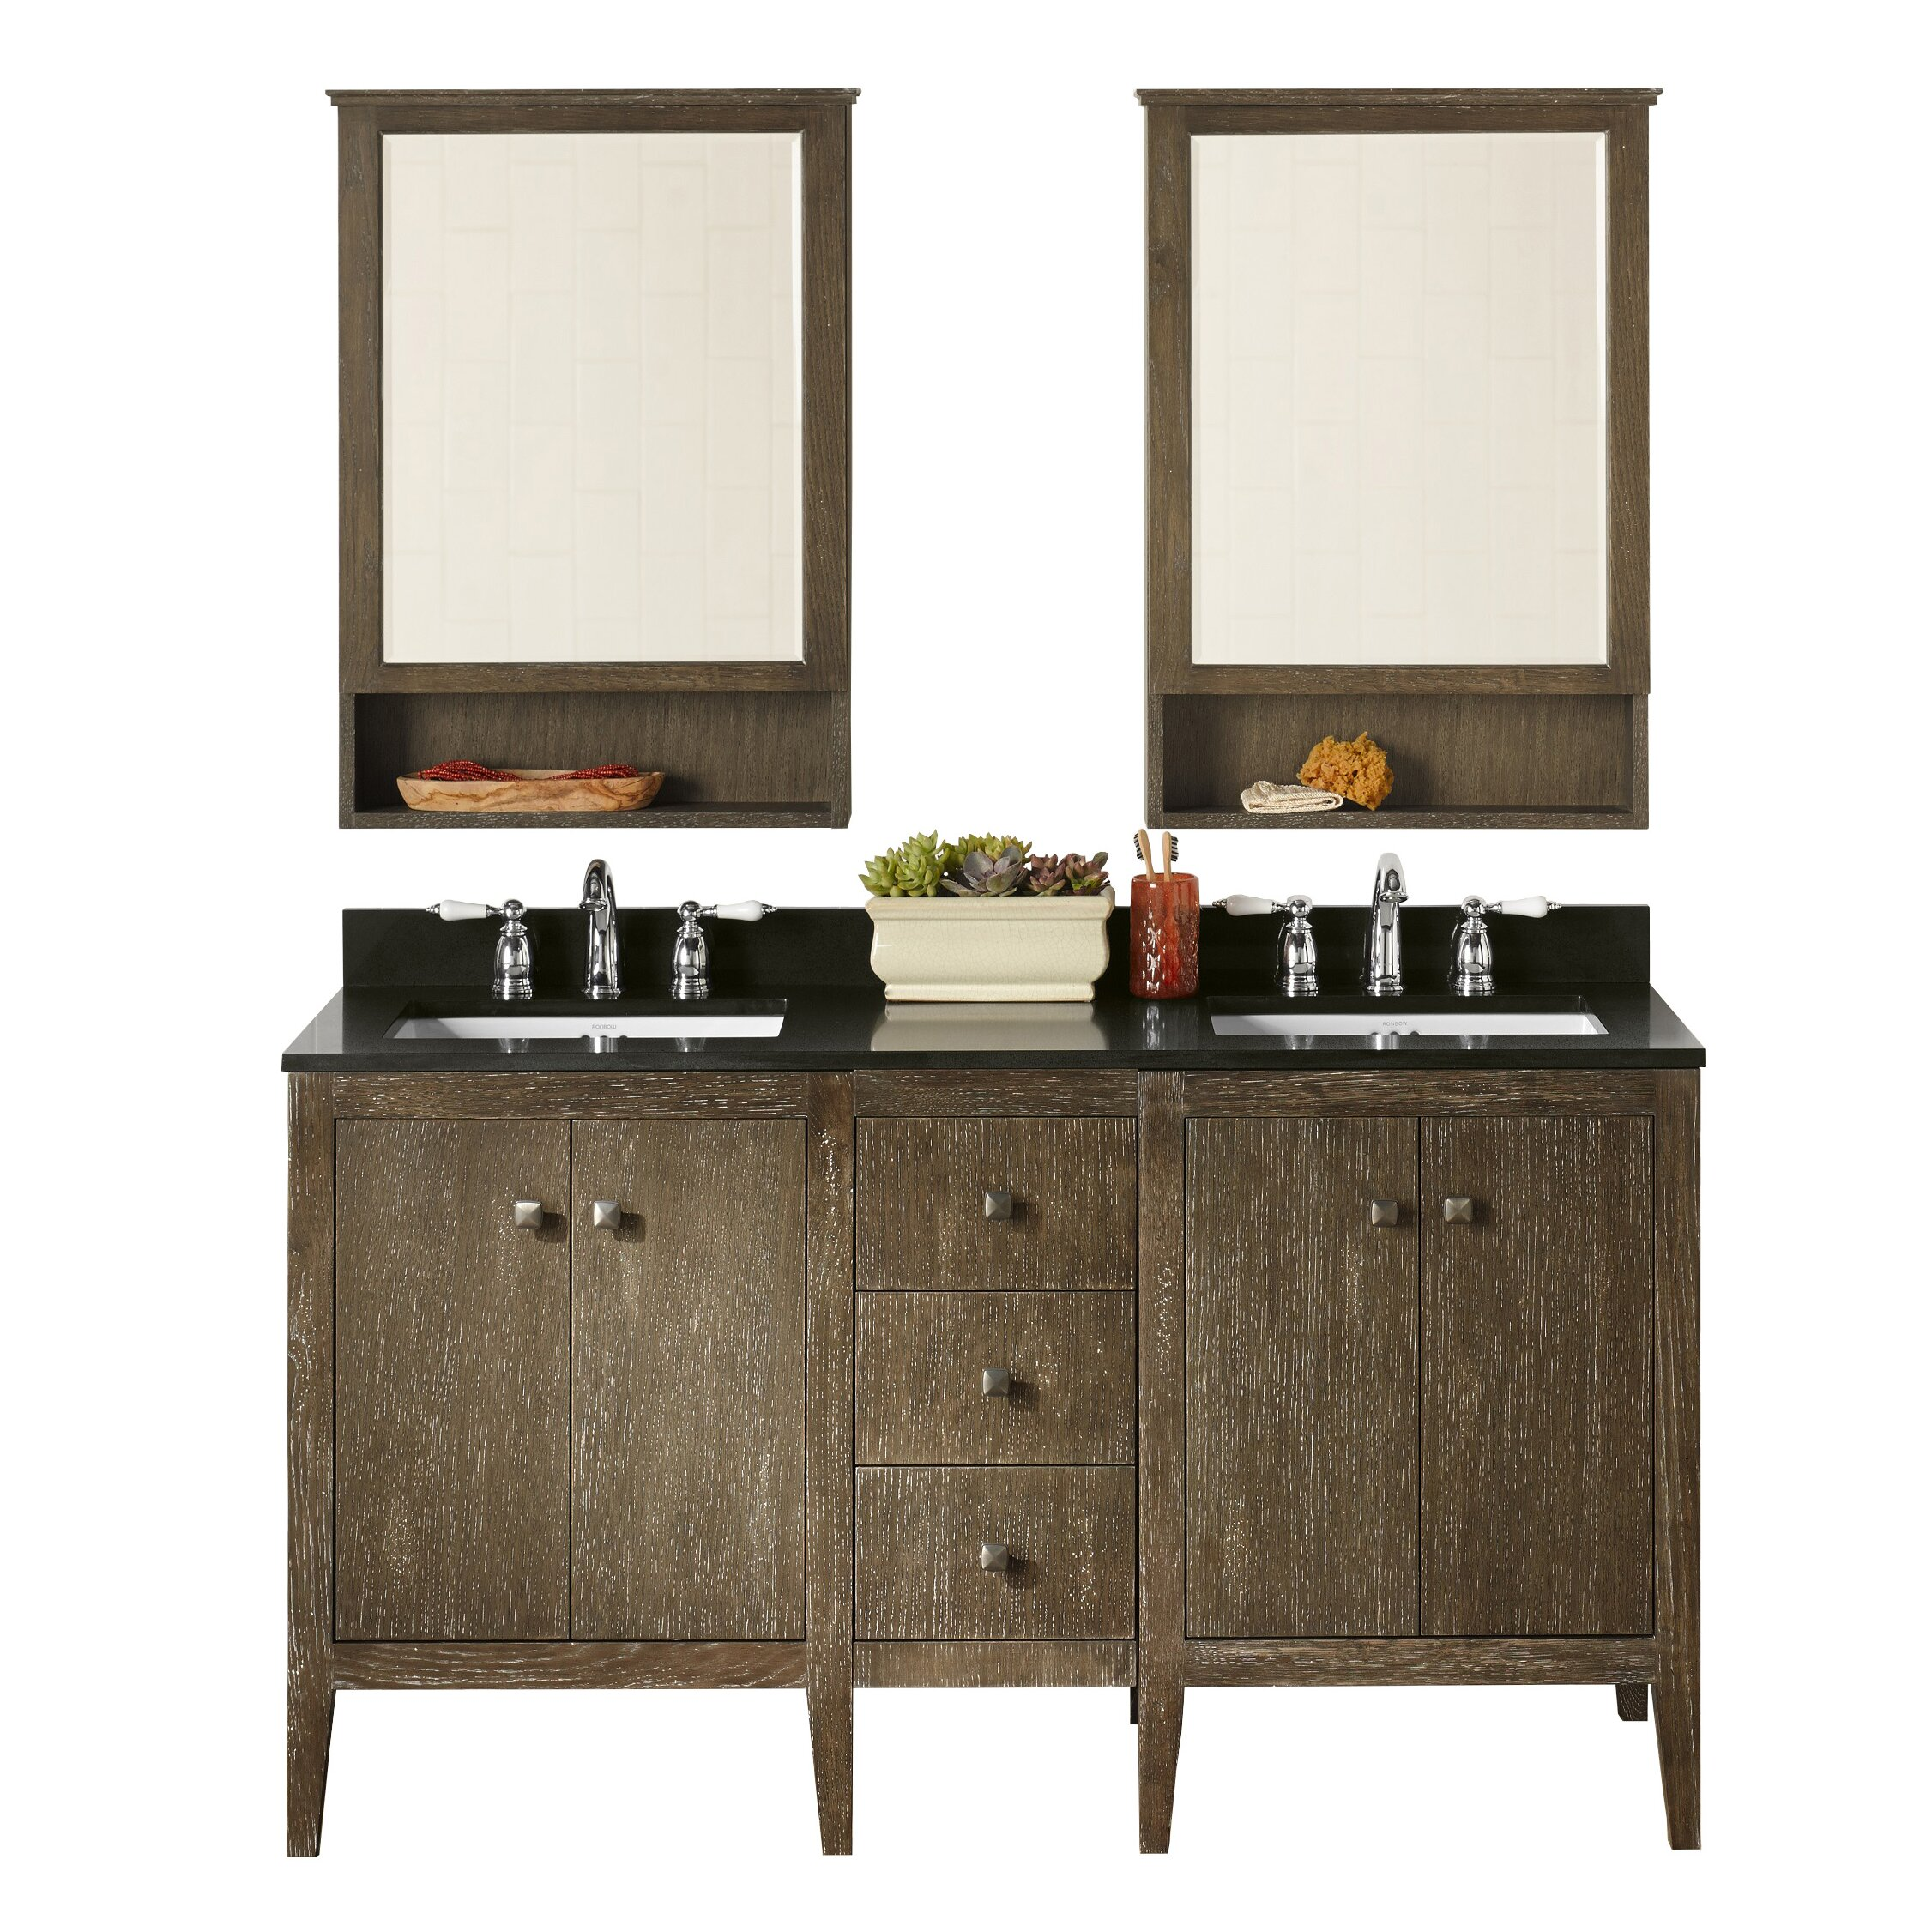 Bathroom vanity set with